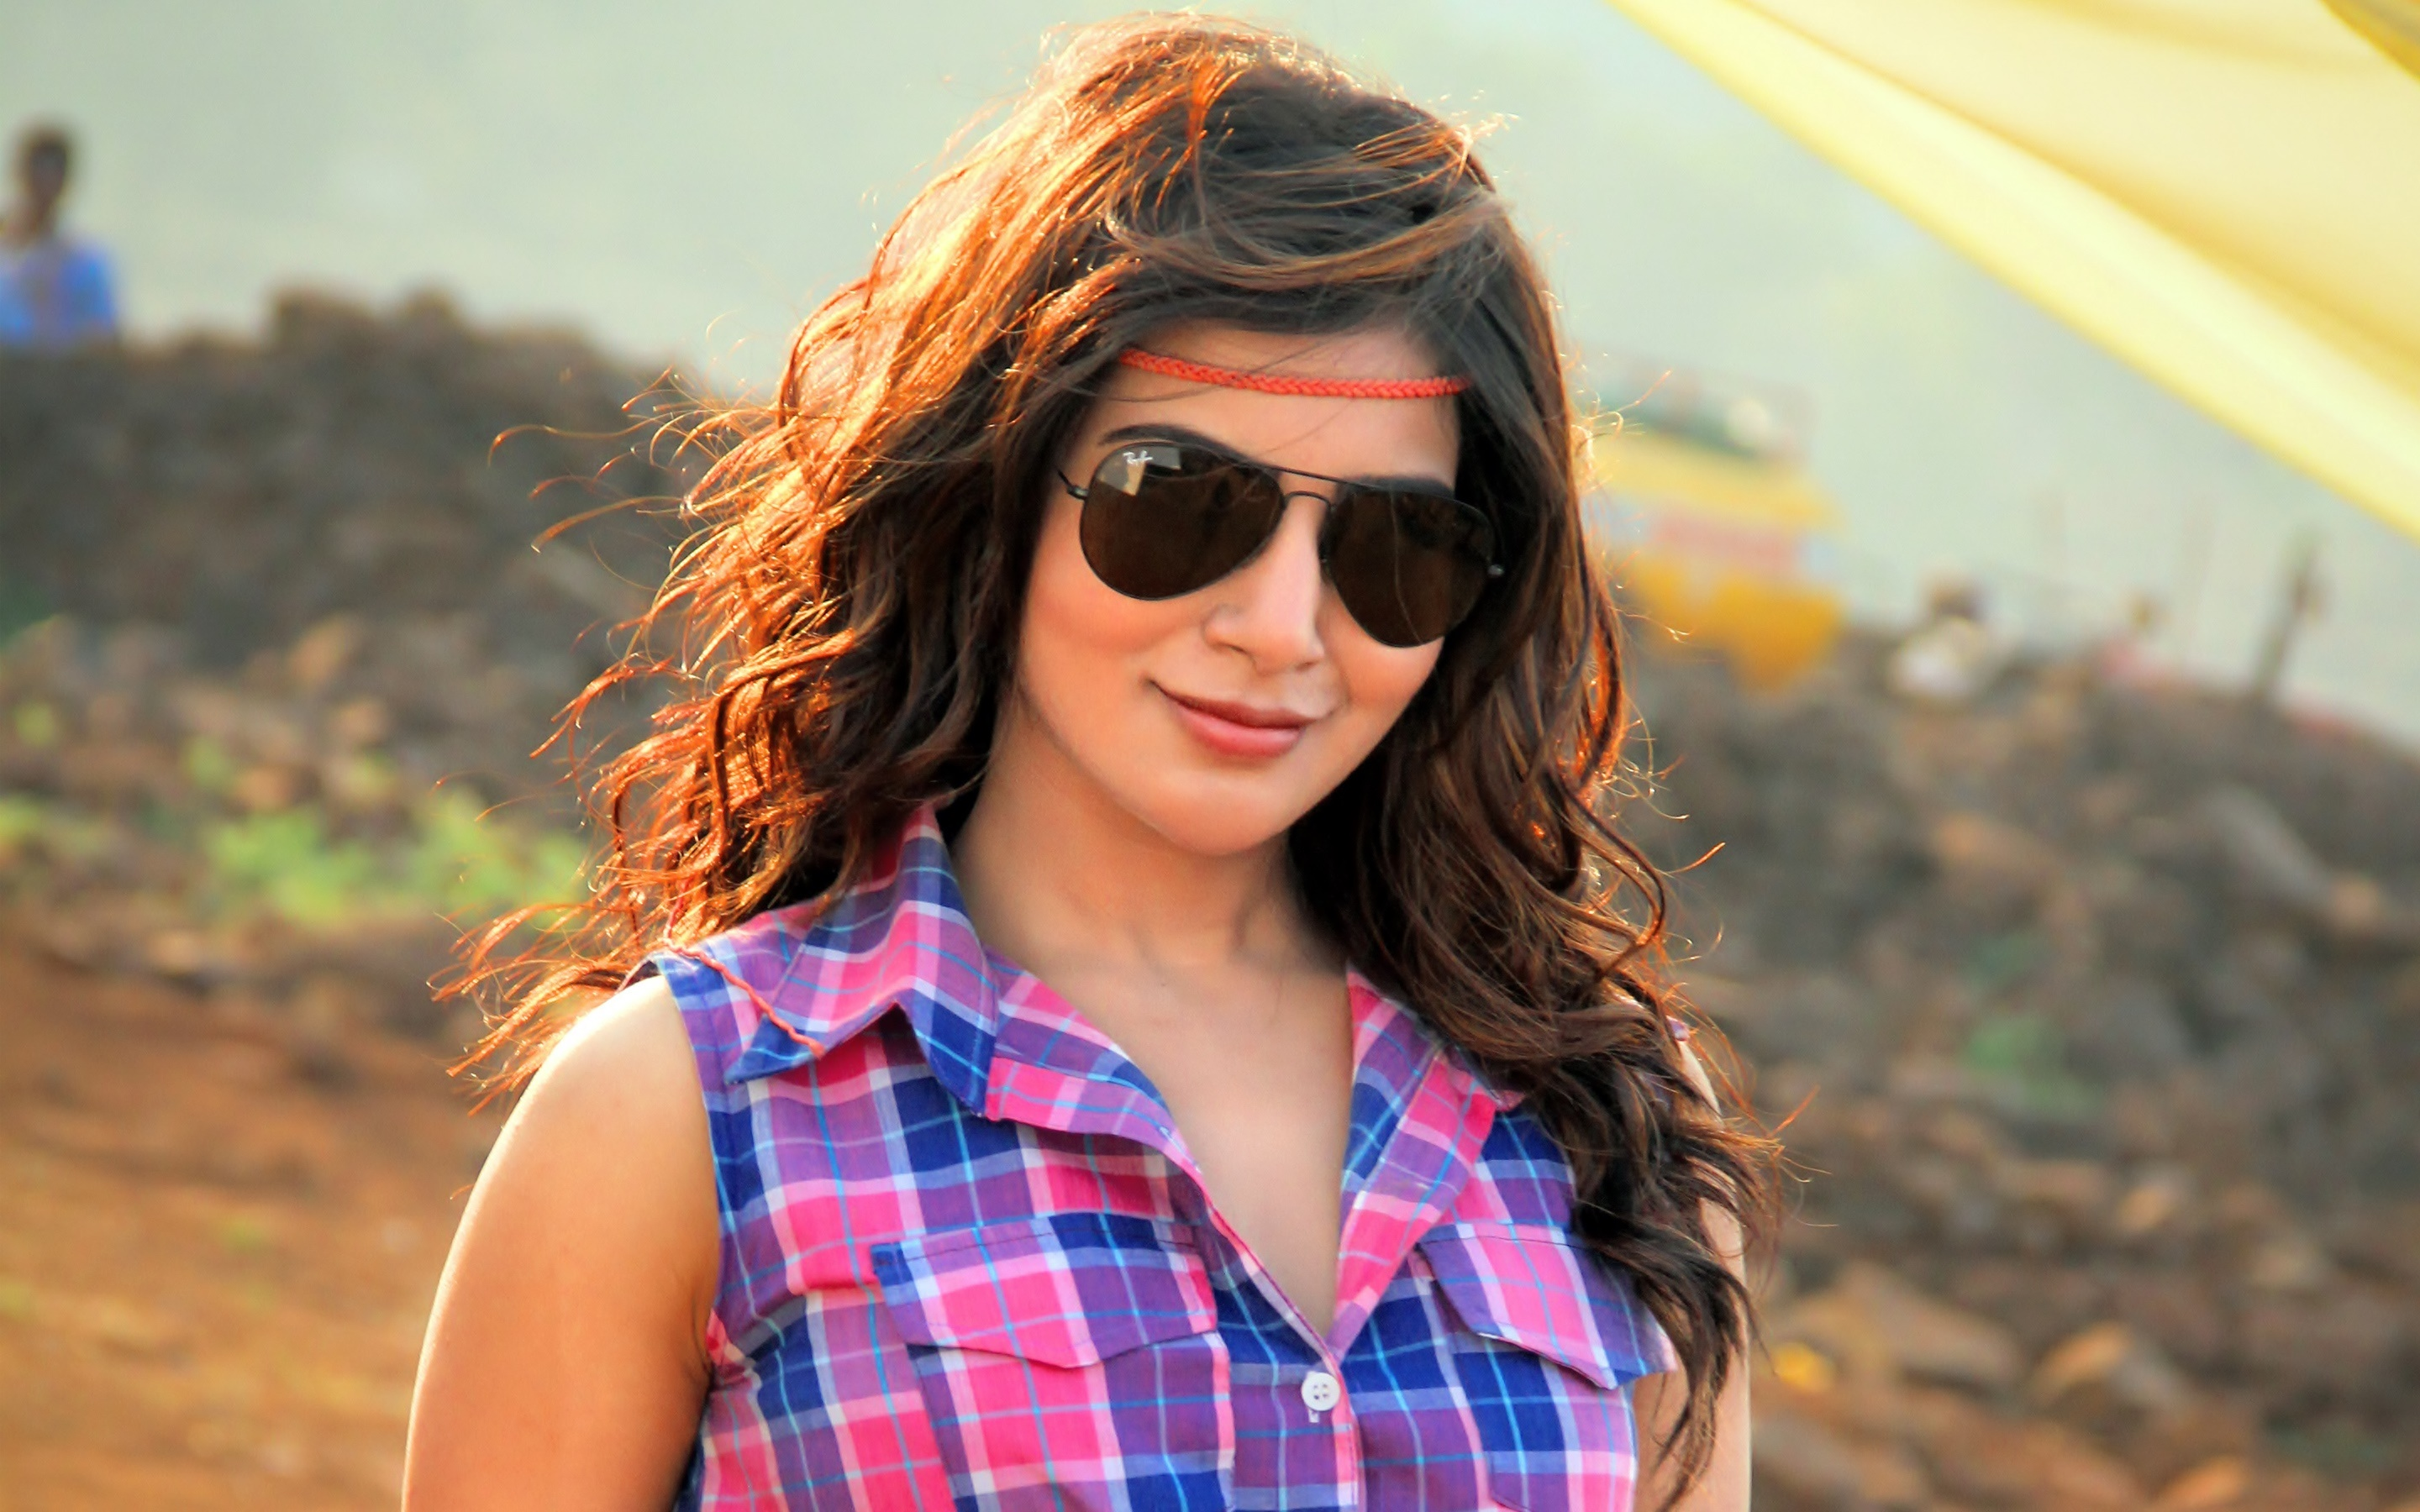 samantha ruth prabhu full hd wallpaper and background image